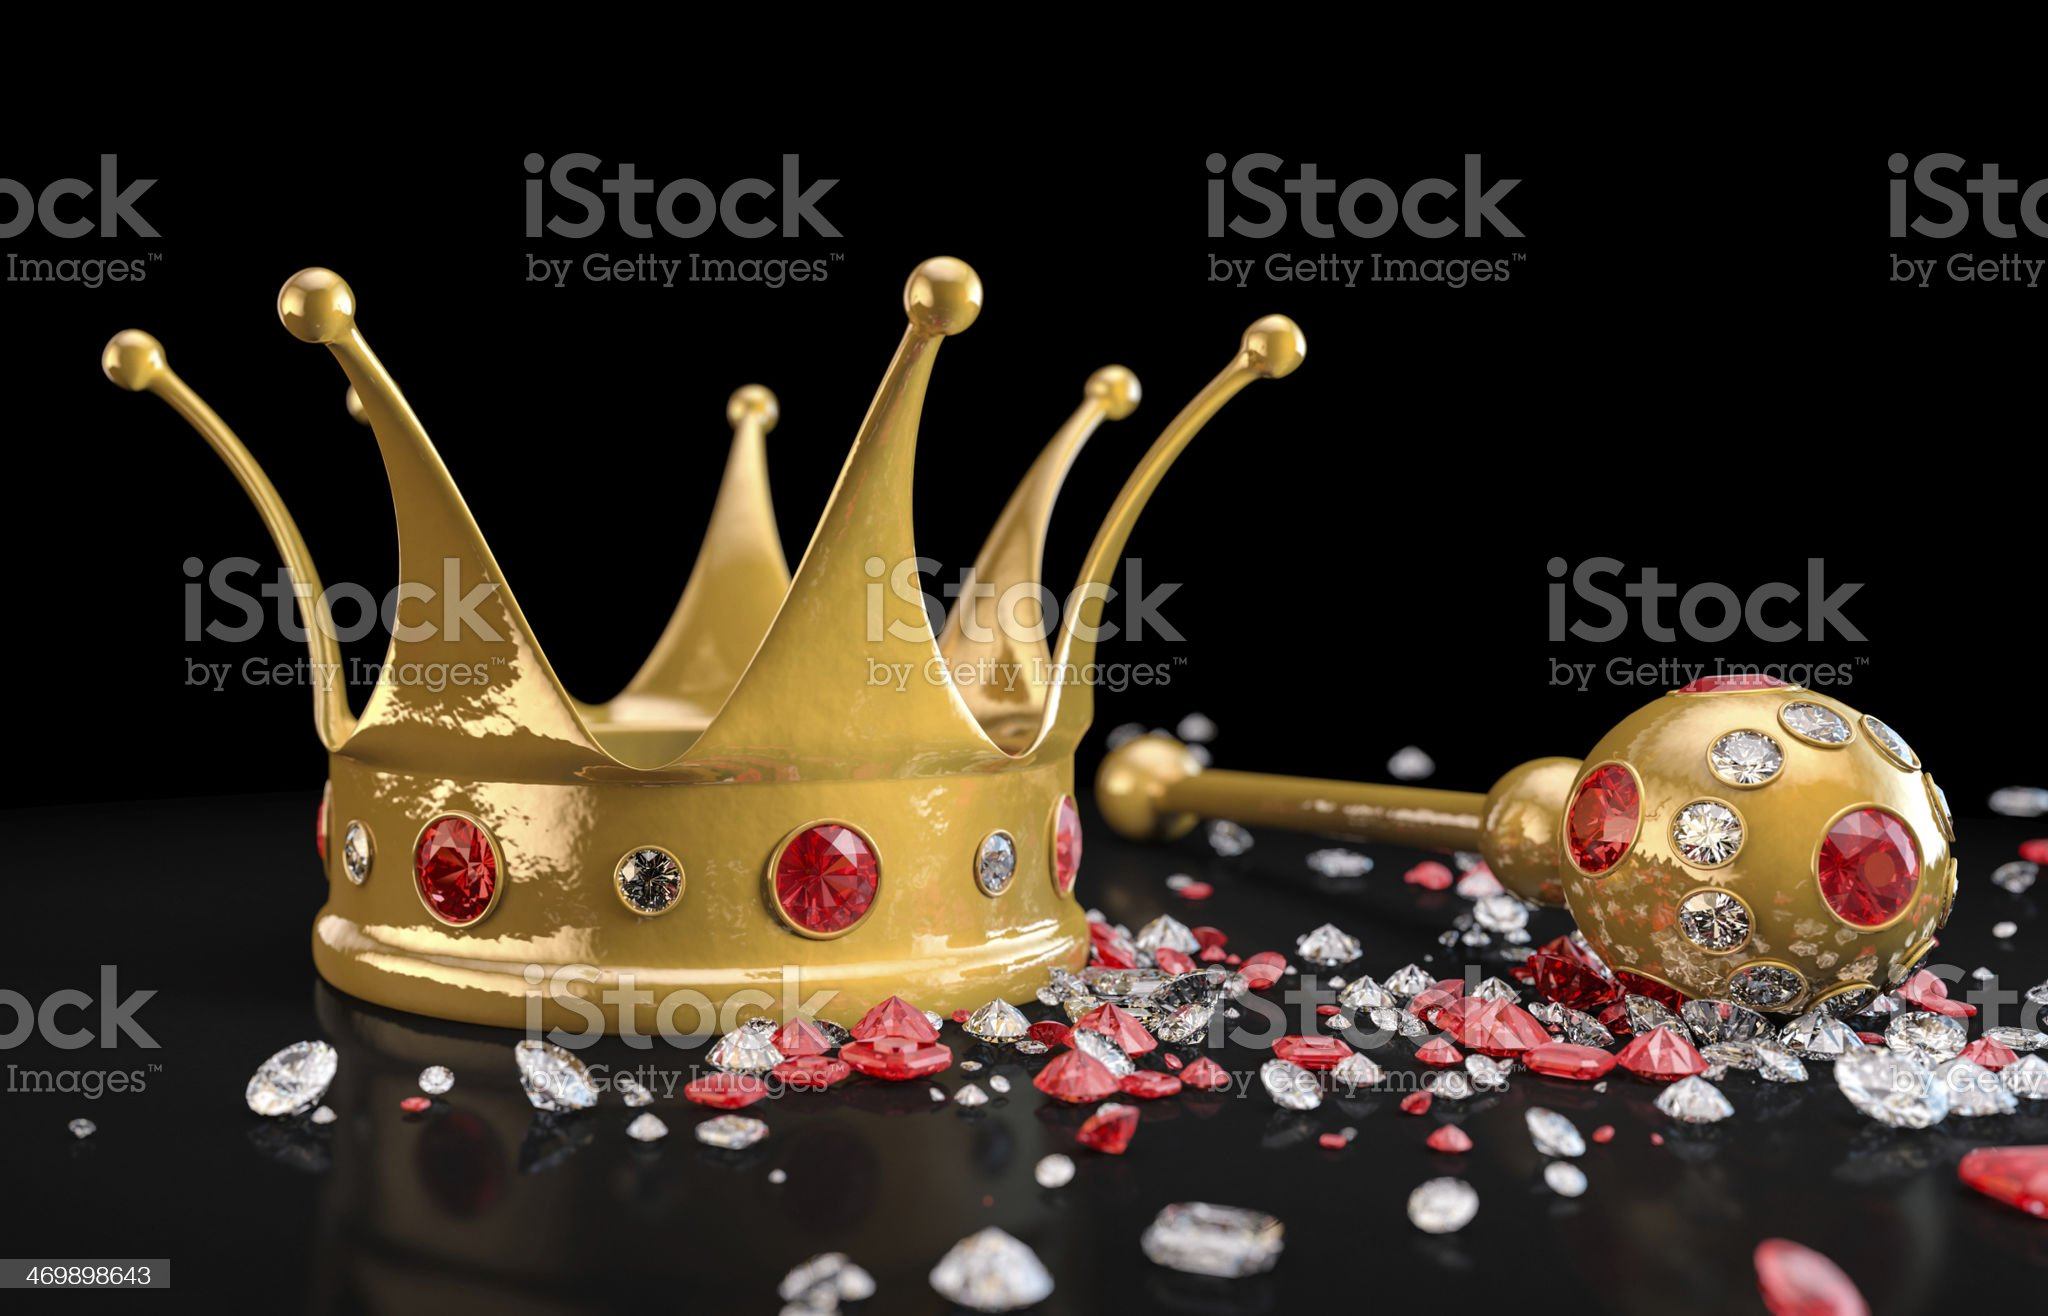 Gold crown and scepter with rubies, diamonds on black surface royalty-free stock photo